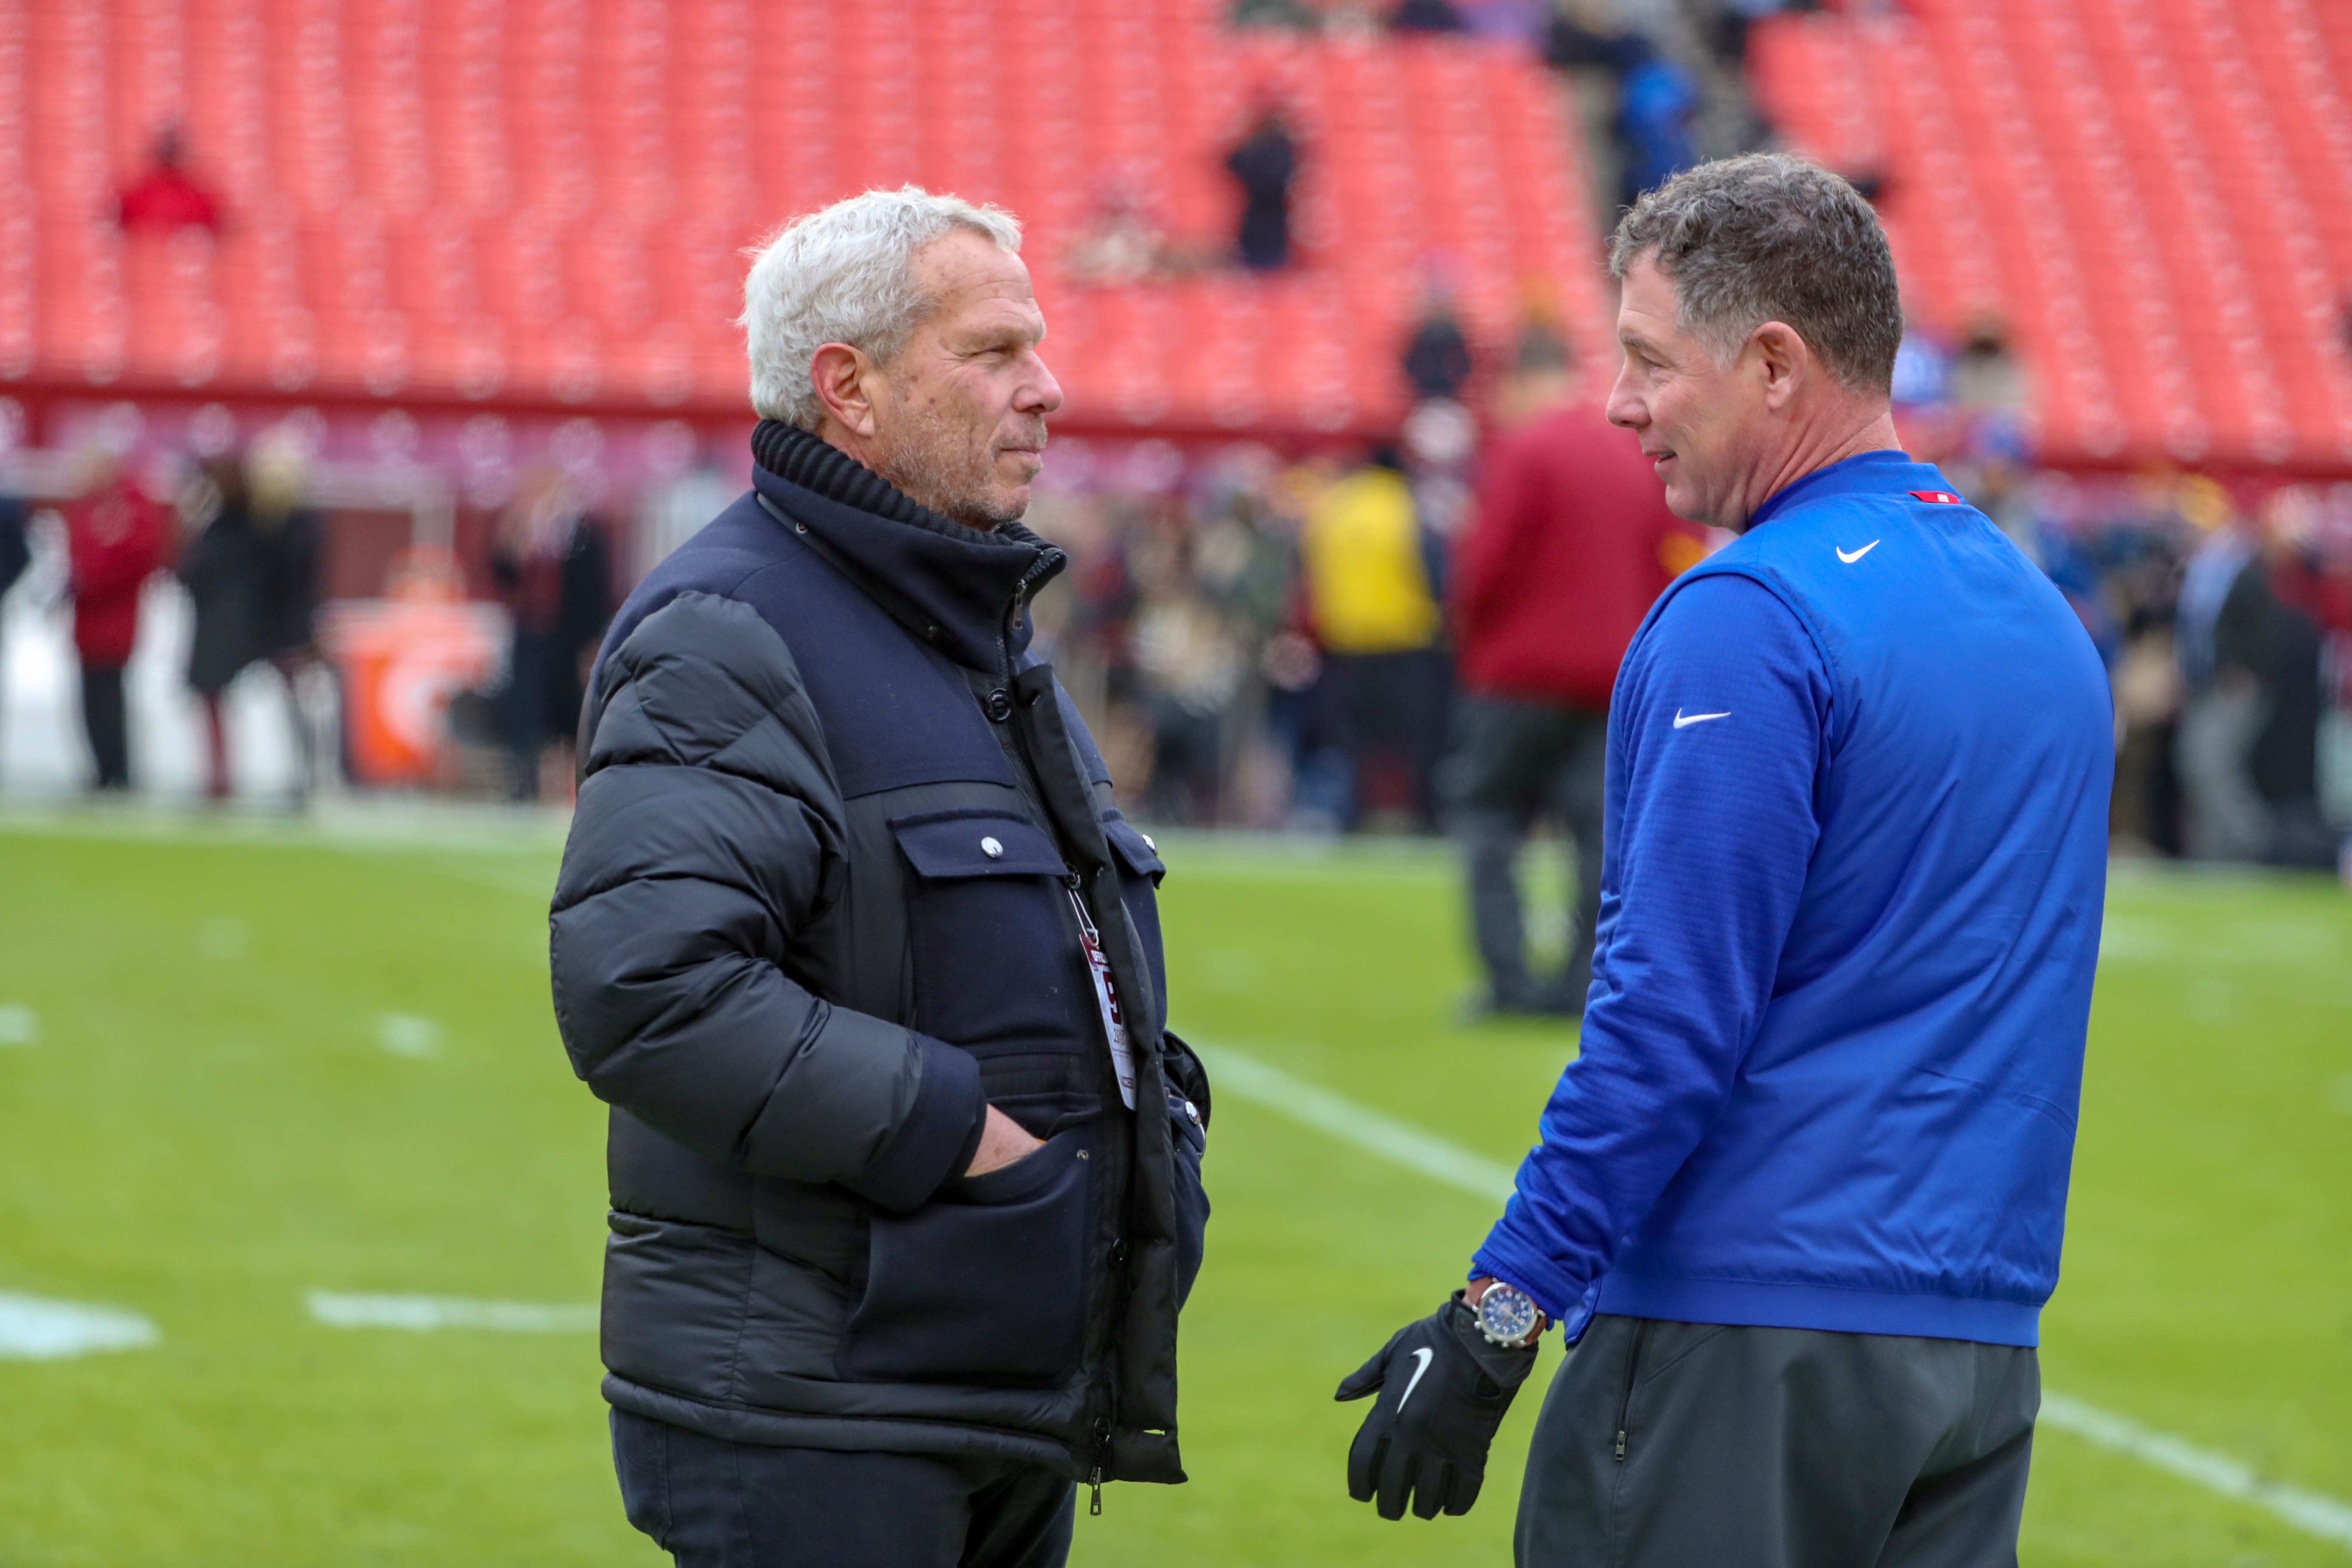 Giants' Steve Tisch doesn't give Pat Shurmur and Dave Gettleman a vote of confidence